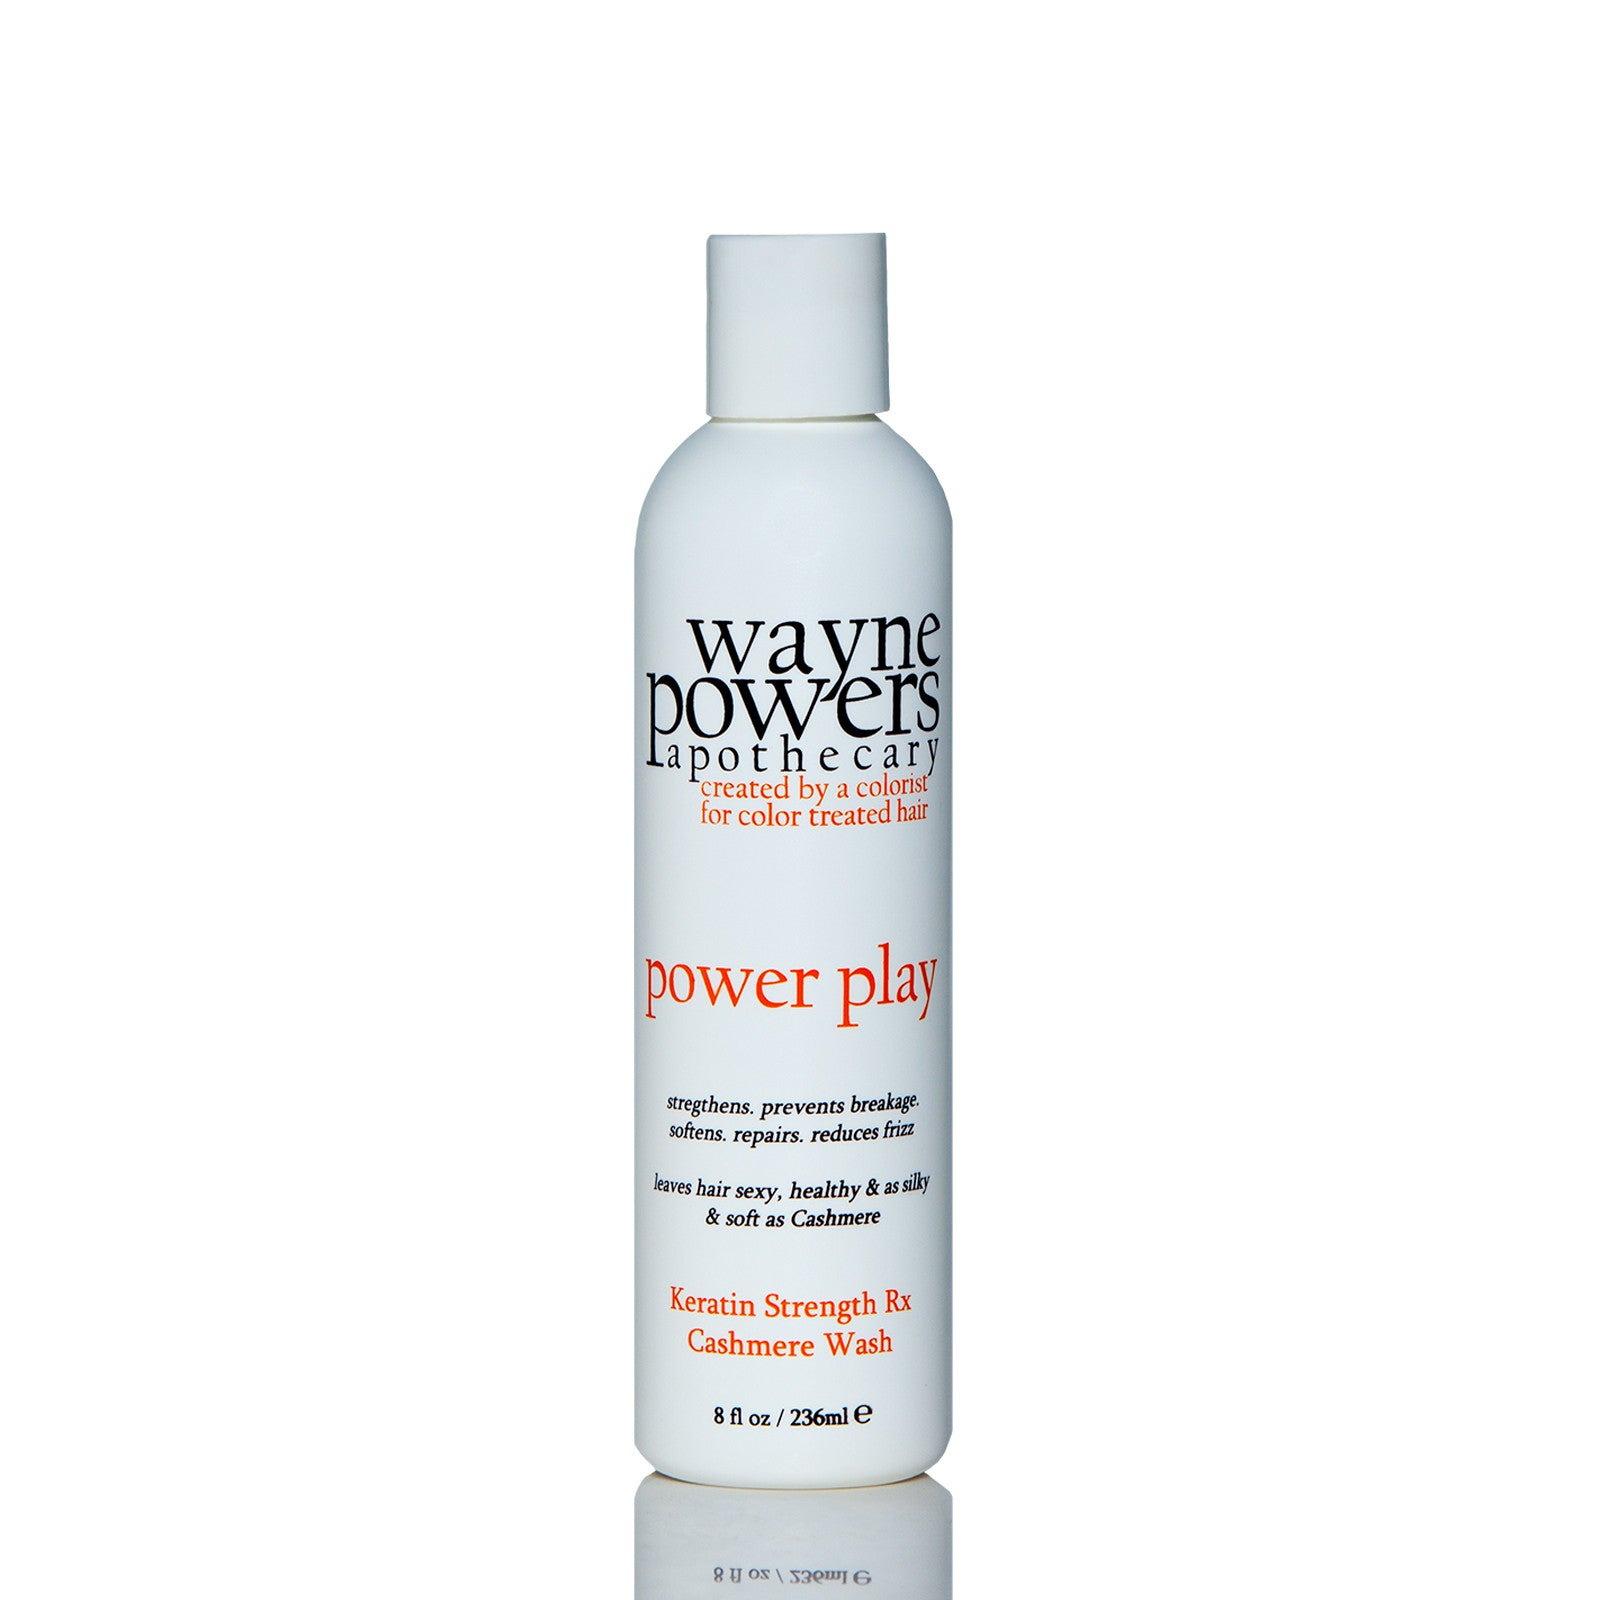 Power Play Keratin Strength Rx Cashmere Wash by Wayne Powers Apothecary